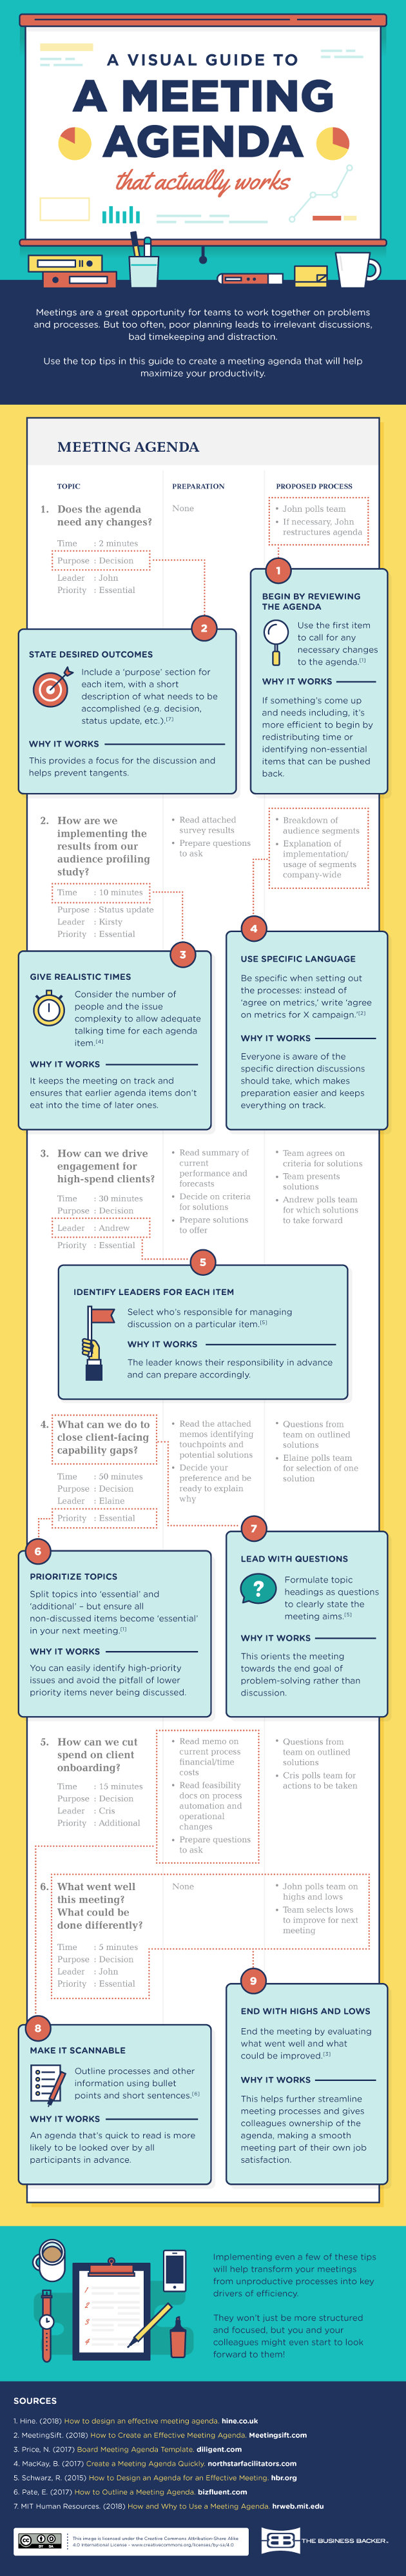 Infographic -- A Visual Guide to a Meeting Agenda That Actually Works